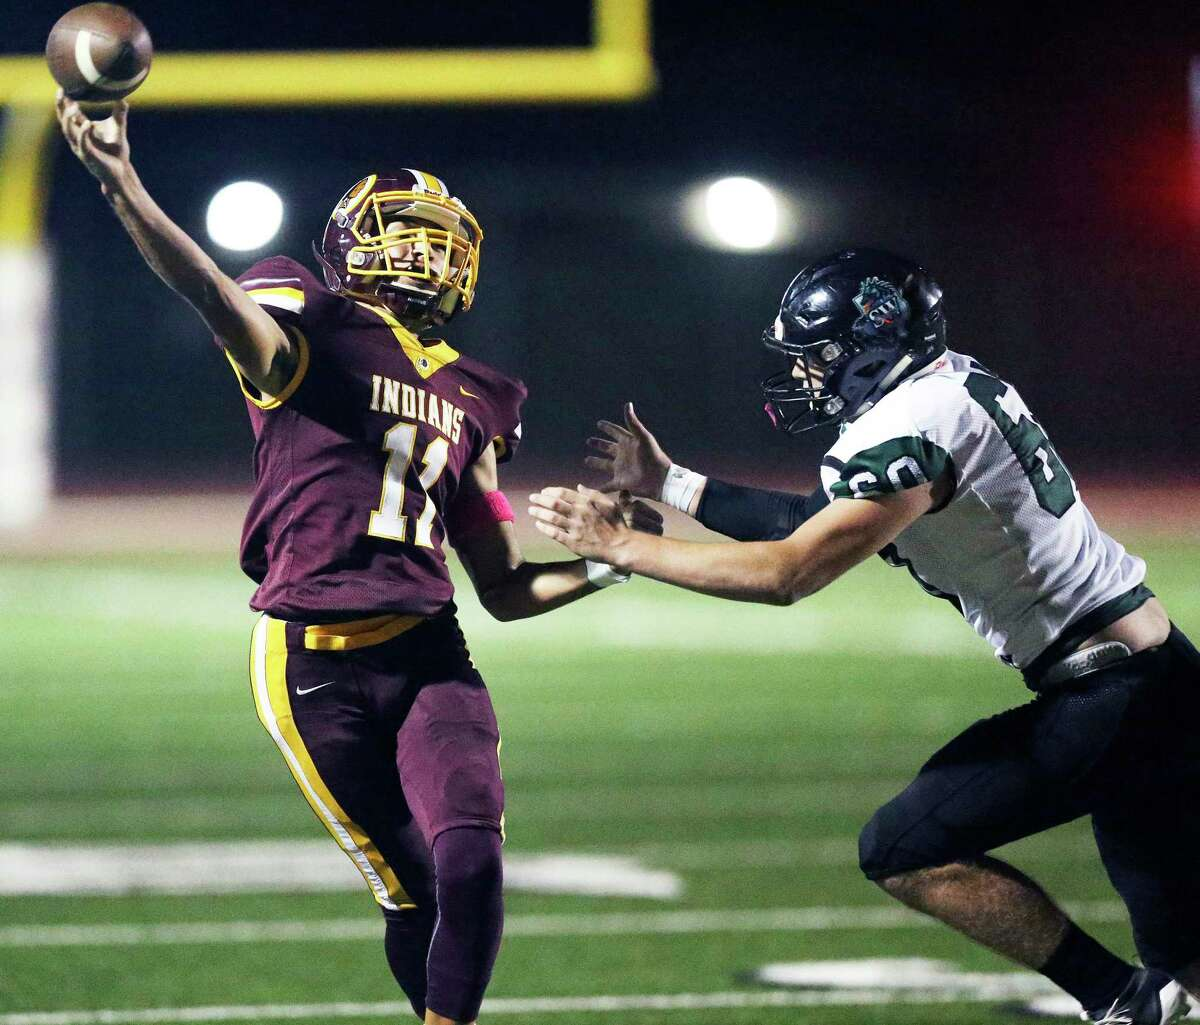 Indians quarterback Joseph Rodriguez gets off a pass under pressure from Zach West as Harlandale hosts Southwest at Harlandale Stadium on 24, 2019.